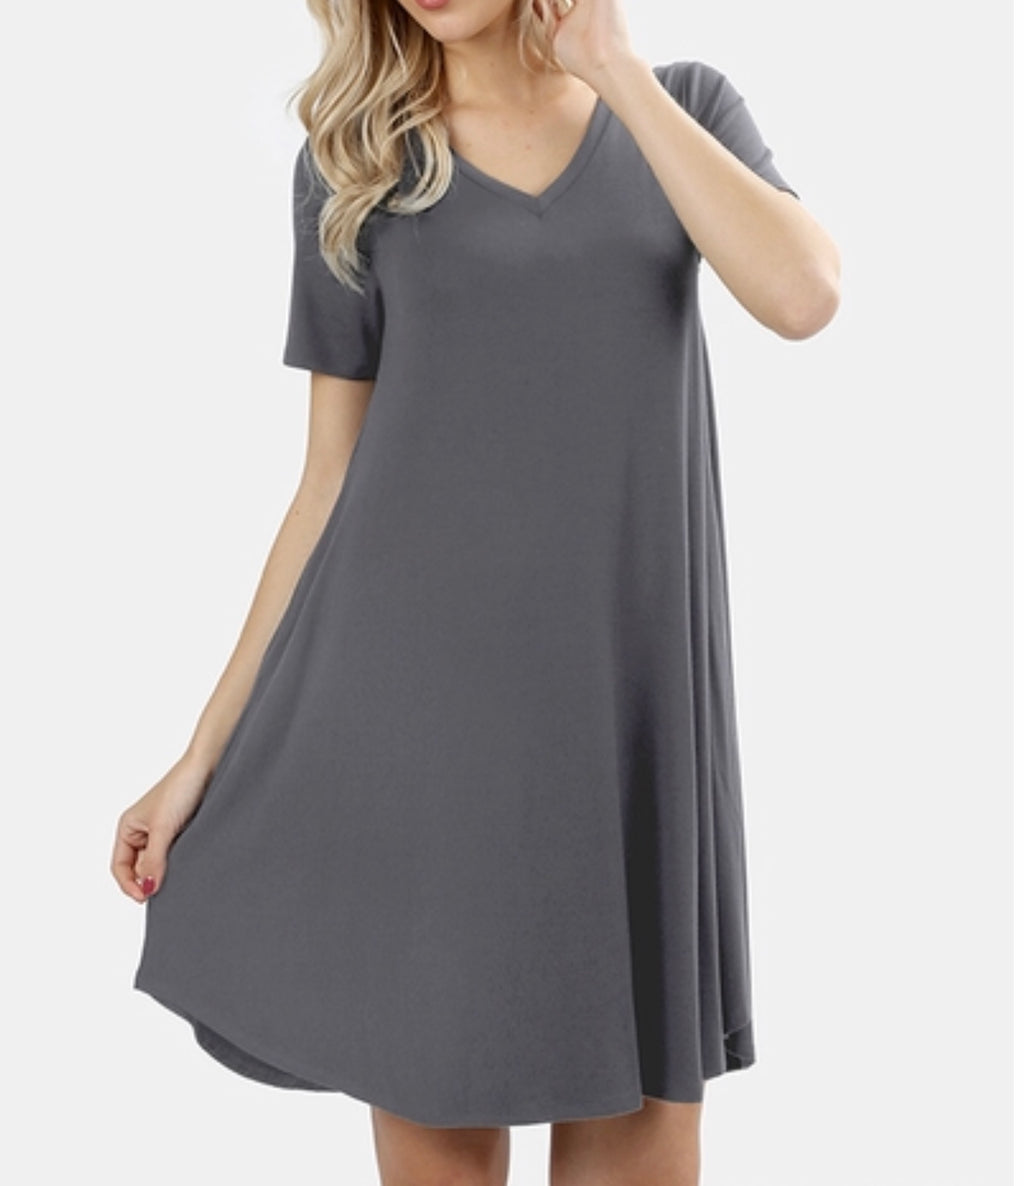 Grey Vneck tee dress (plus available)